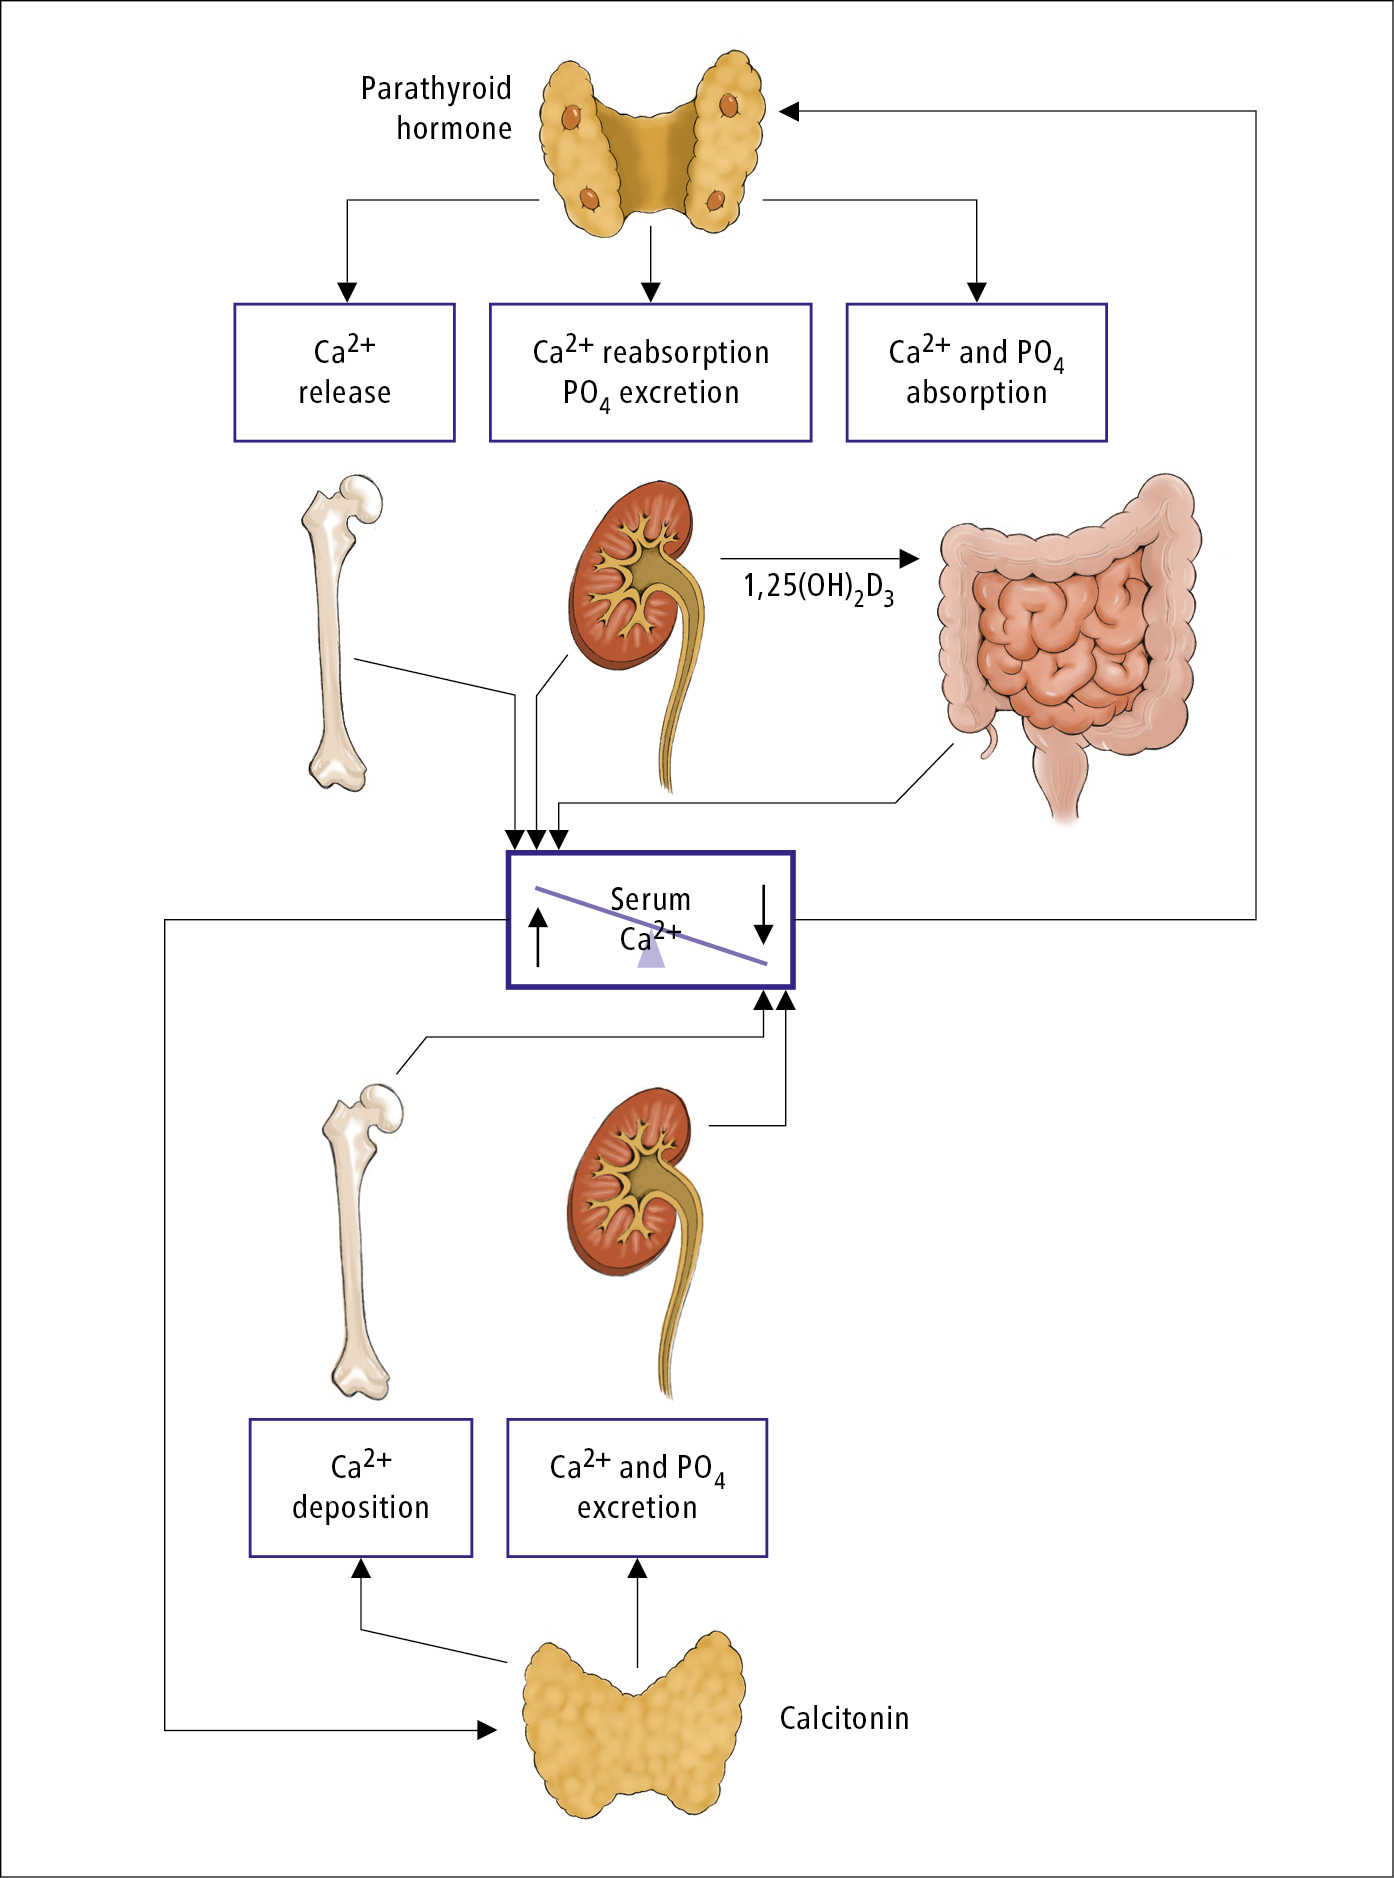 Figure 031_4_3486.  Physiological control of calcium metabolism by parathyroid hormone and its thyroid-produced counter, calcitonin.  Illustration courtesy of Dr Shannon Zhang.